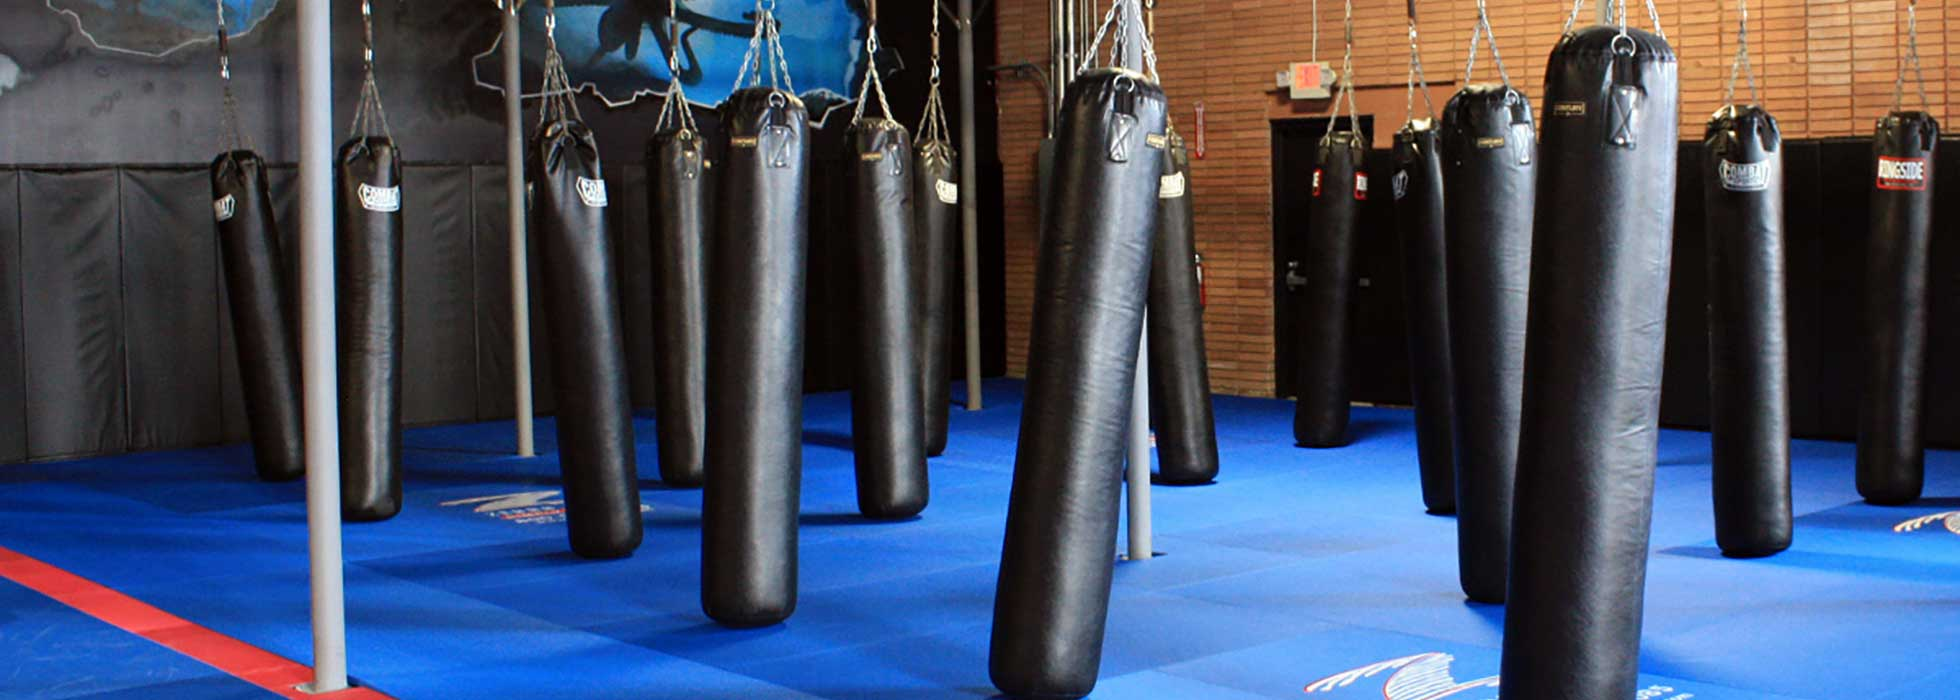 Kickboxing Classes near Atlanta GA, Kickboxing Classes near Cartersville GA, Kickboxing Classes near Chamblee GA, Kickboxing Classes near Midtown Atlanta GA, Kickboxing Classes near Sandy Springs GA, Kickboxing Classes near Dacula GA